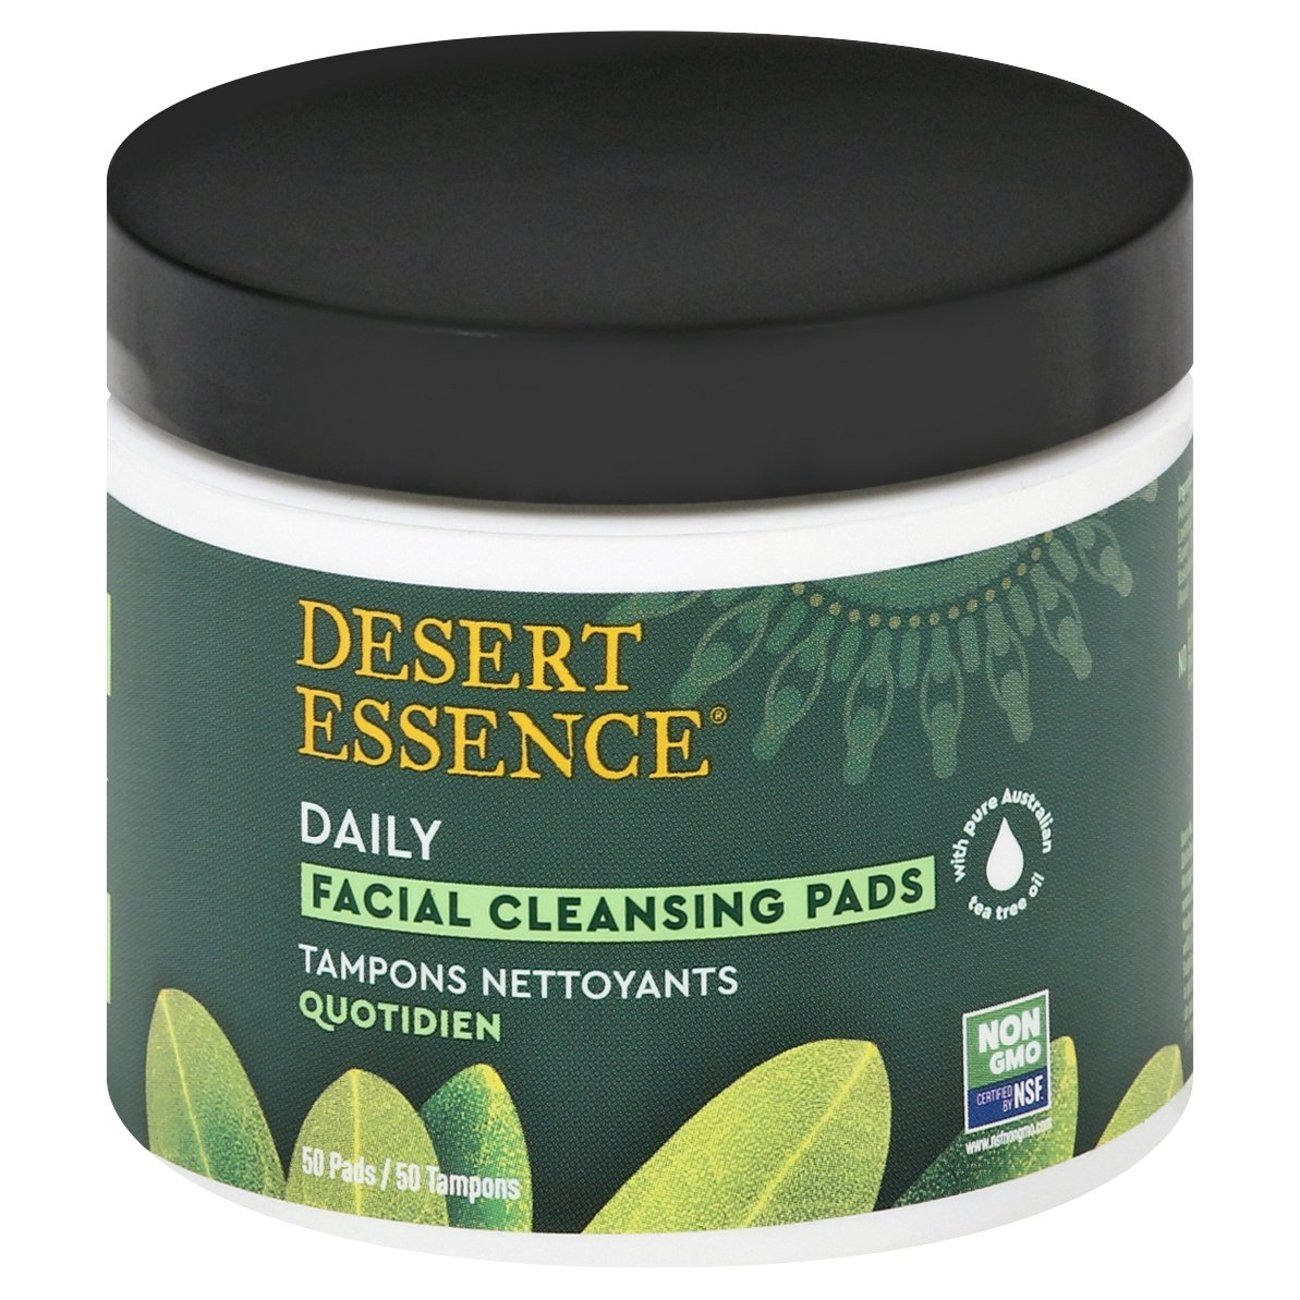 Natural Facial Cleansing Pads with Tea Tree Oil - 50 Pad(s) by Desert Essence (pack of 3) Black Soap Facial Cleanser - 8 fl. oz. by Dr. Woods (pack of 4)